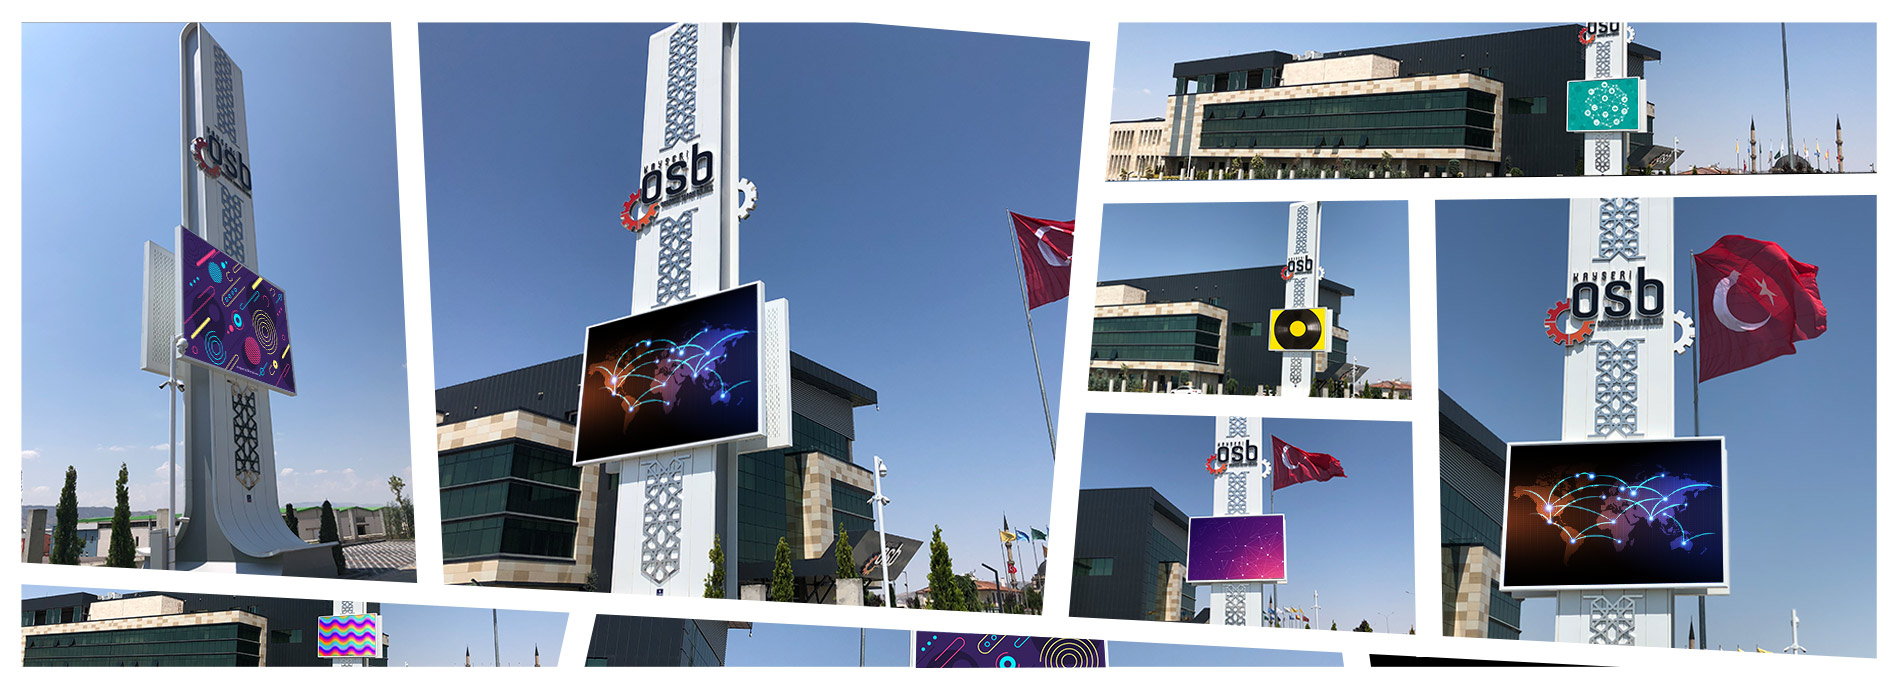 Kayseri Industrial Zone Outdoor Led Screen Project